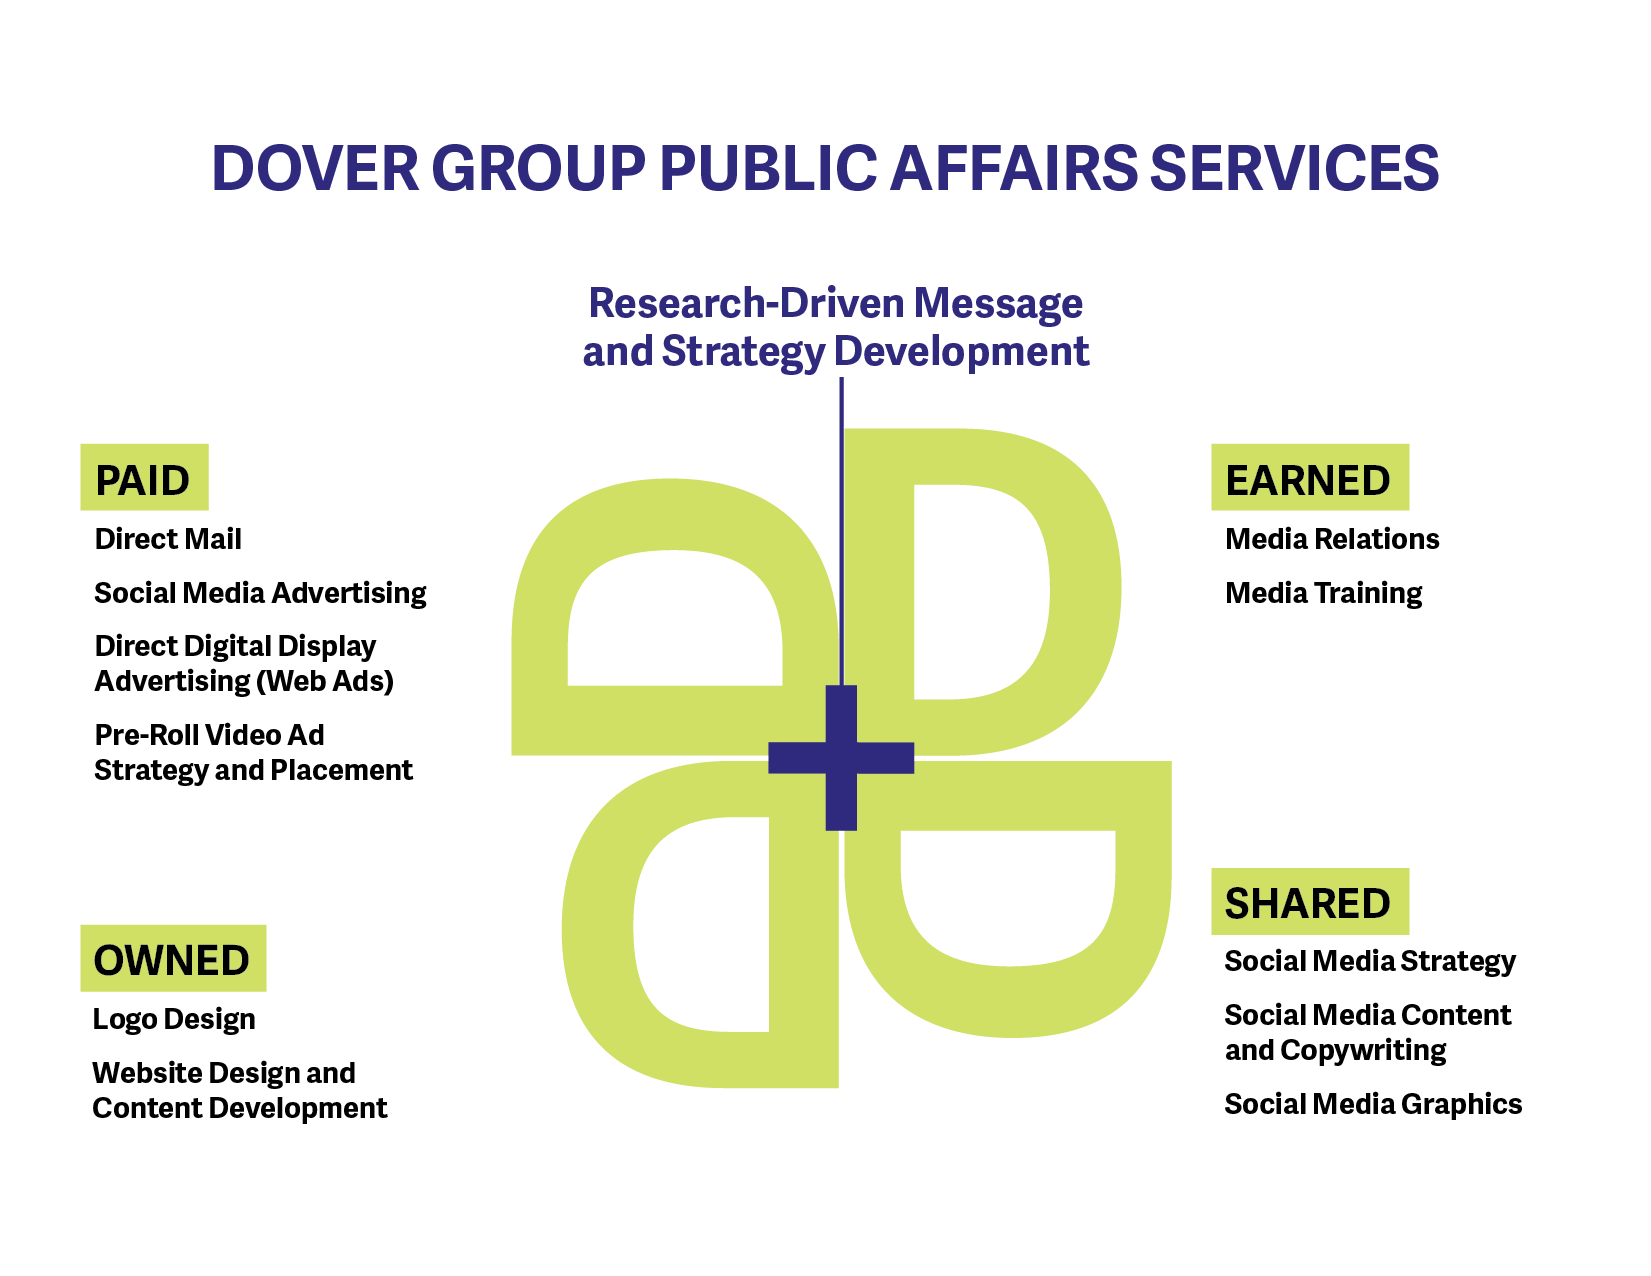 Dover Group Public Affairs Services